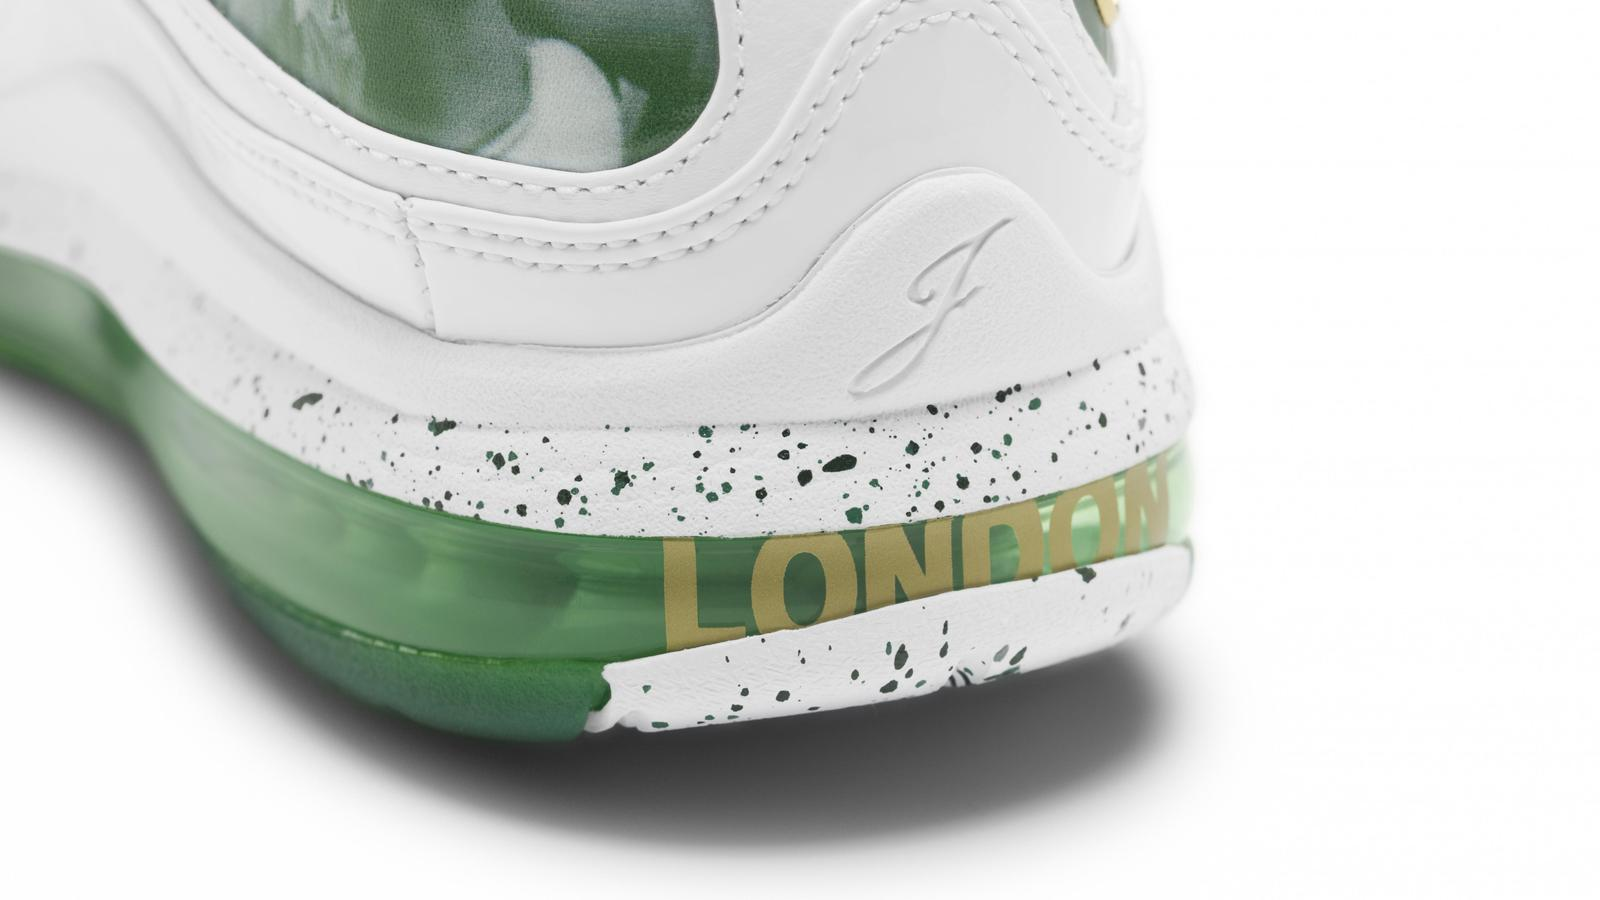 a00a3614db9 London Limited-Edition Air Max LeBron VII Released - Nike News